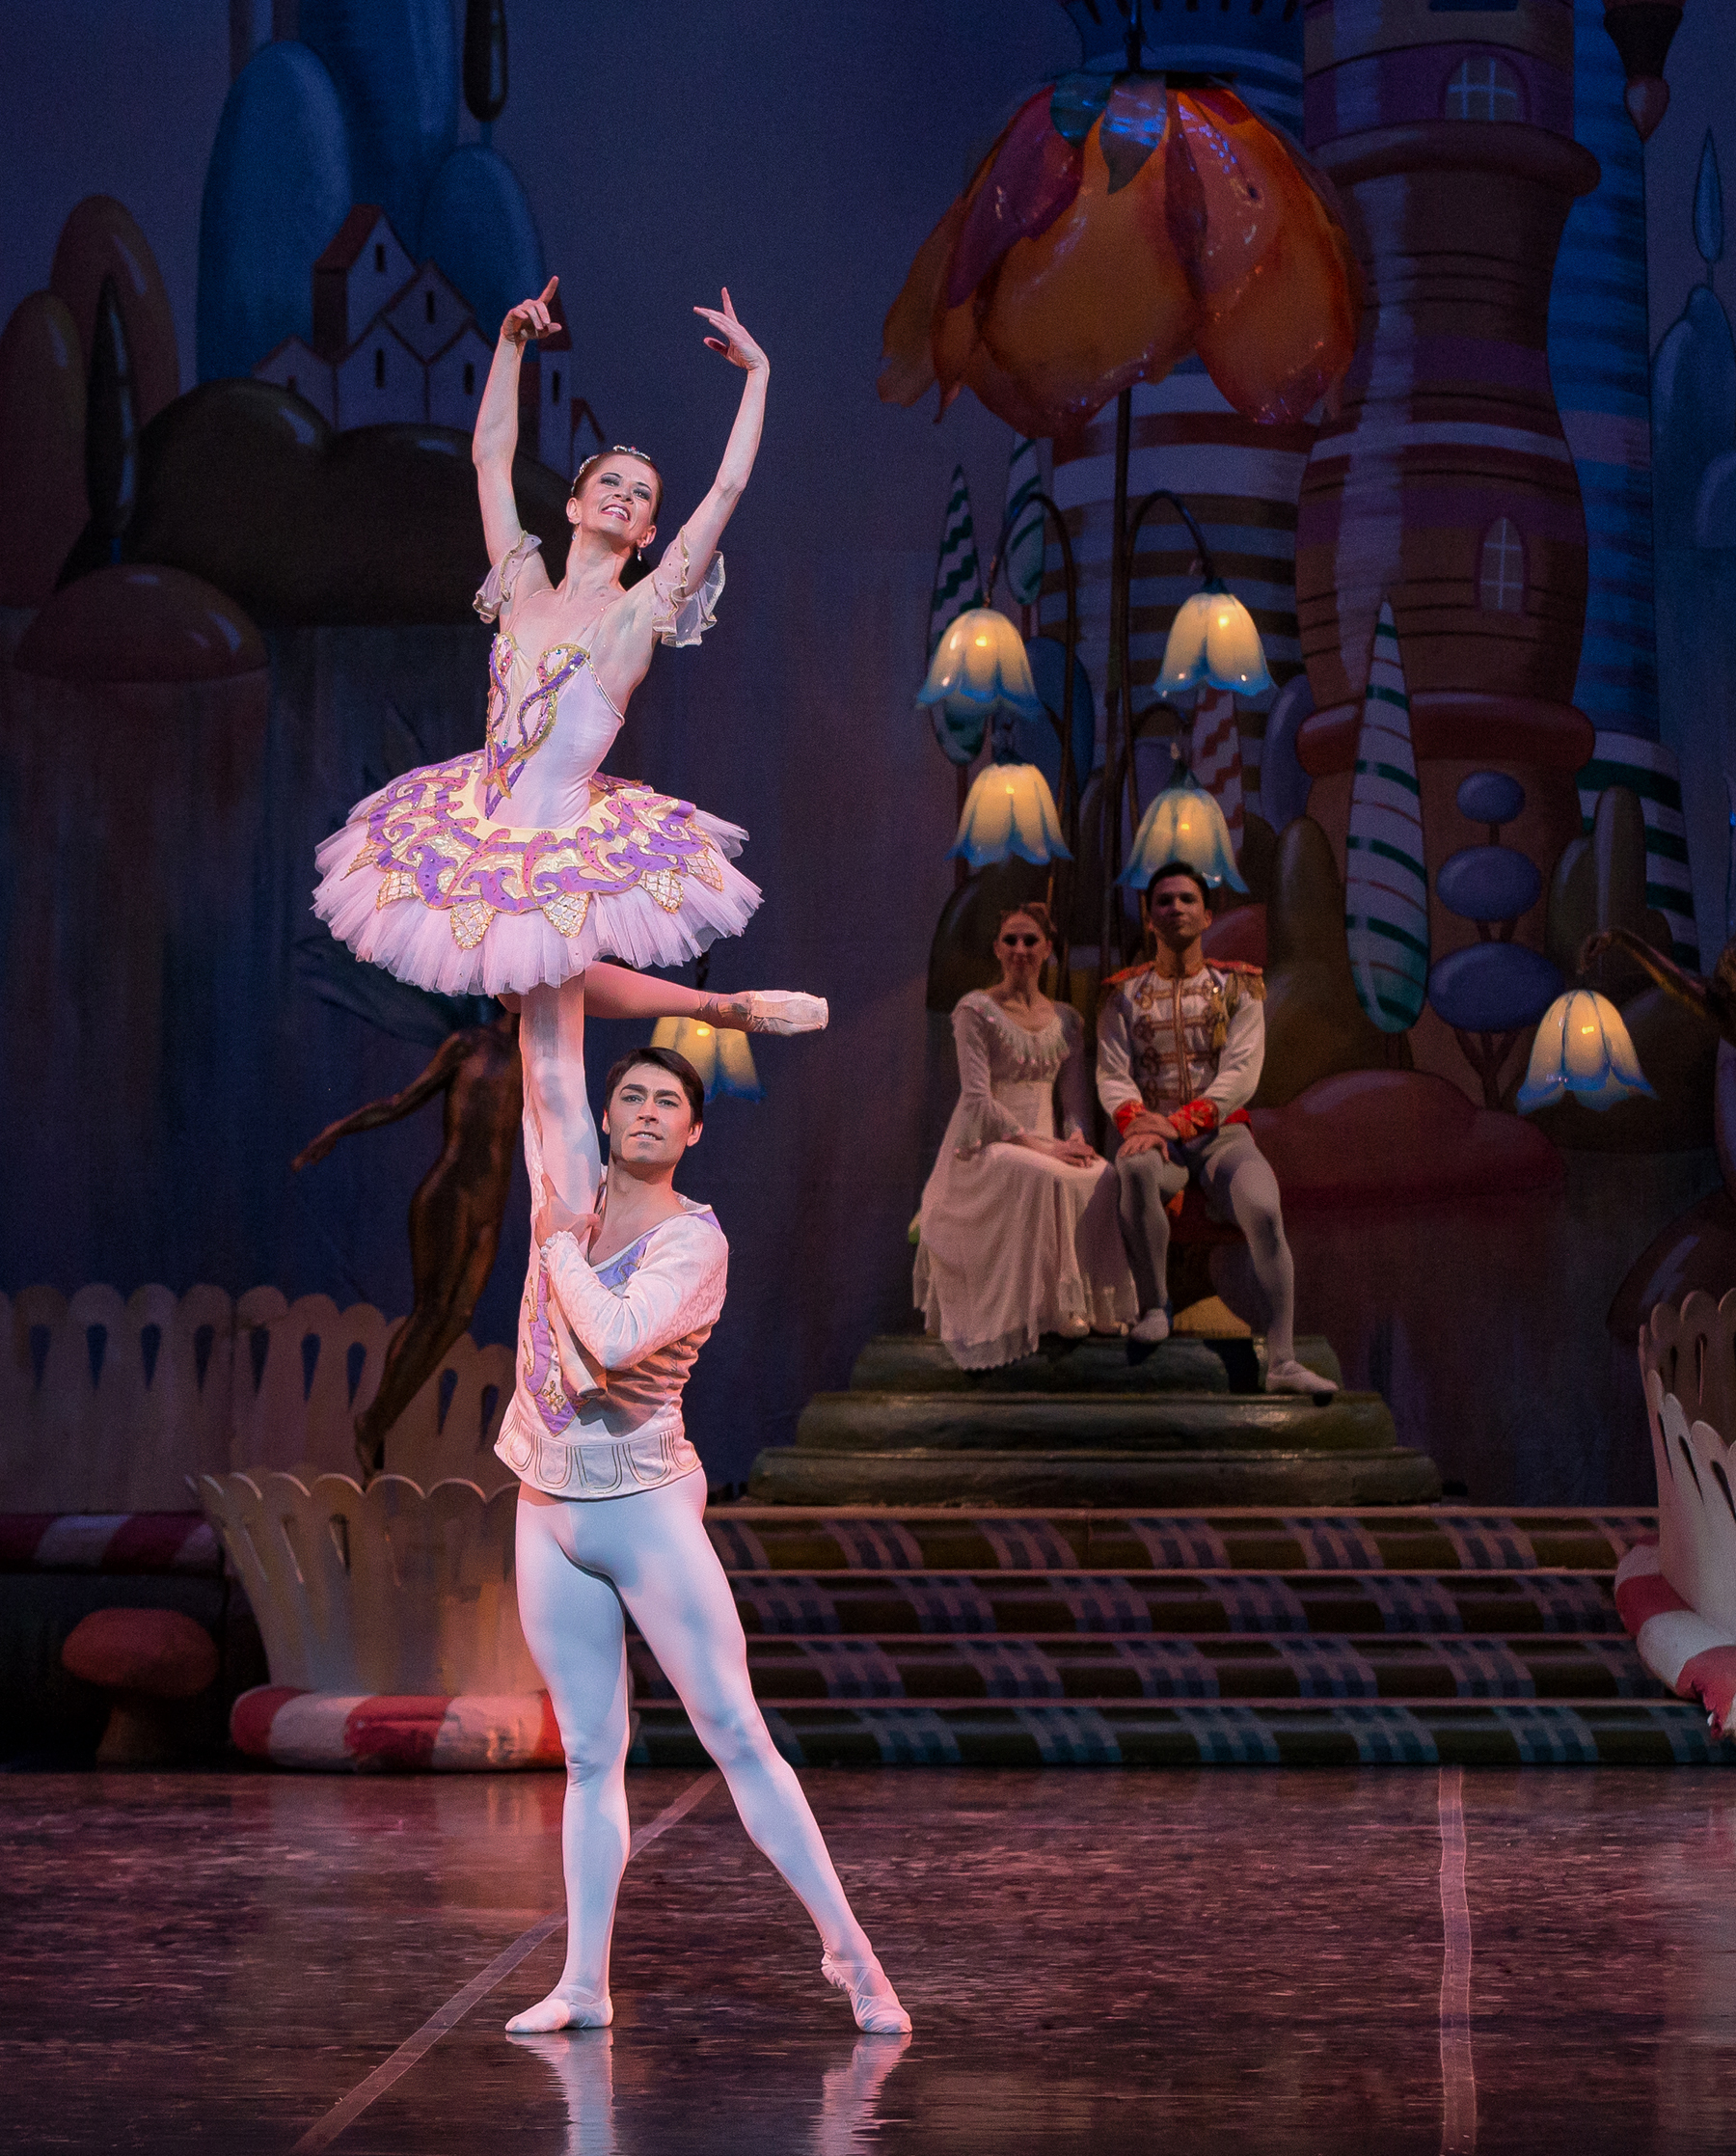 a experience of first ballet English national ballet nutcracker: first ballet experience - see 95 traveler reviews, 26 candid photos, and great deals for london, uk, at tripadvisor.